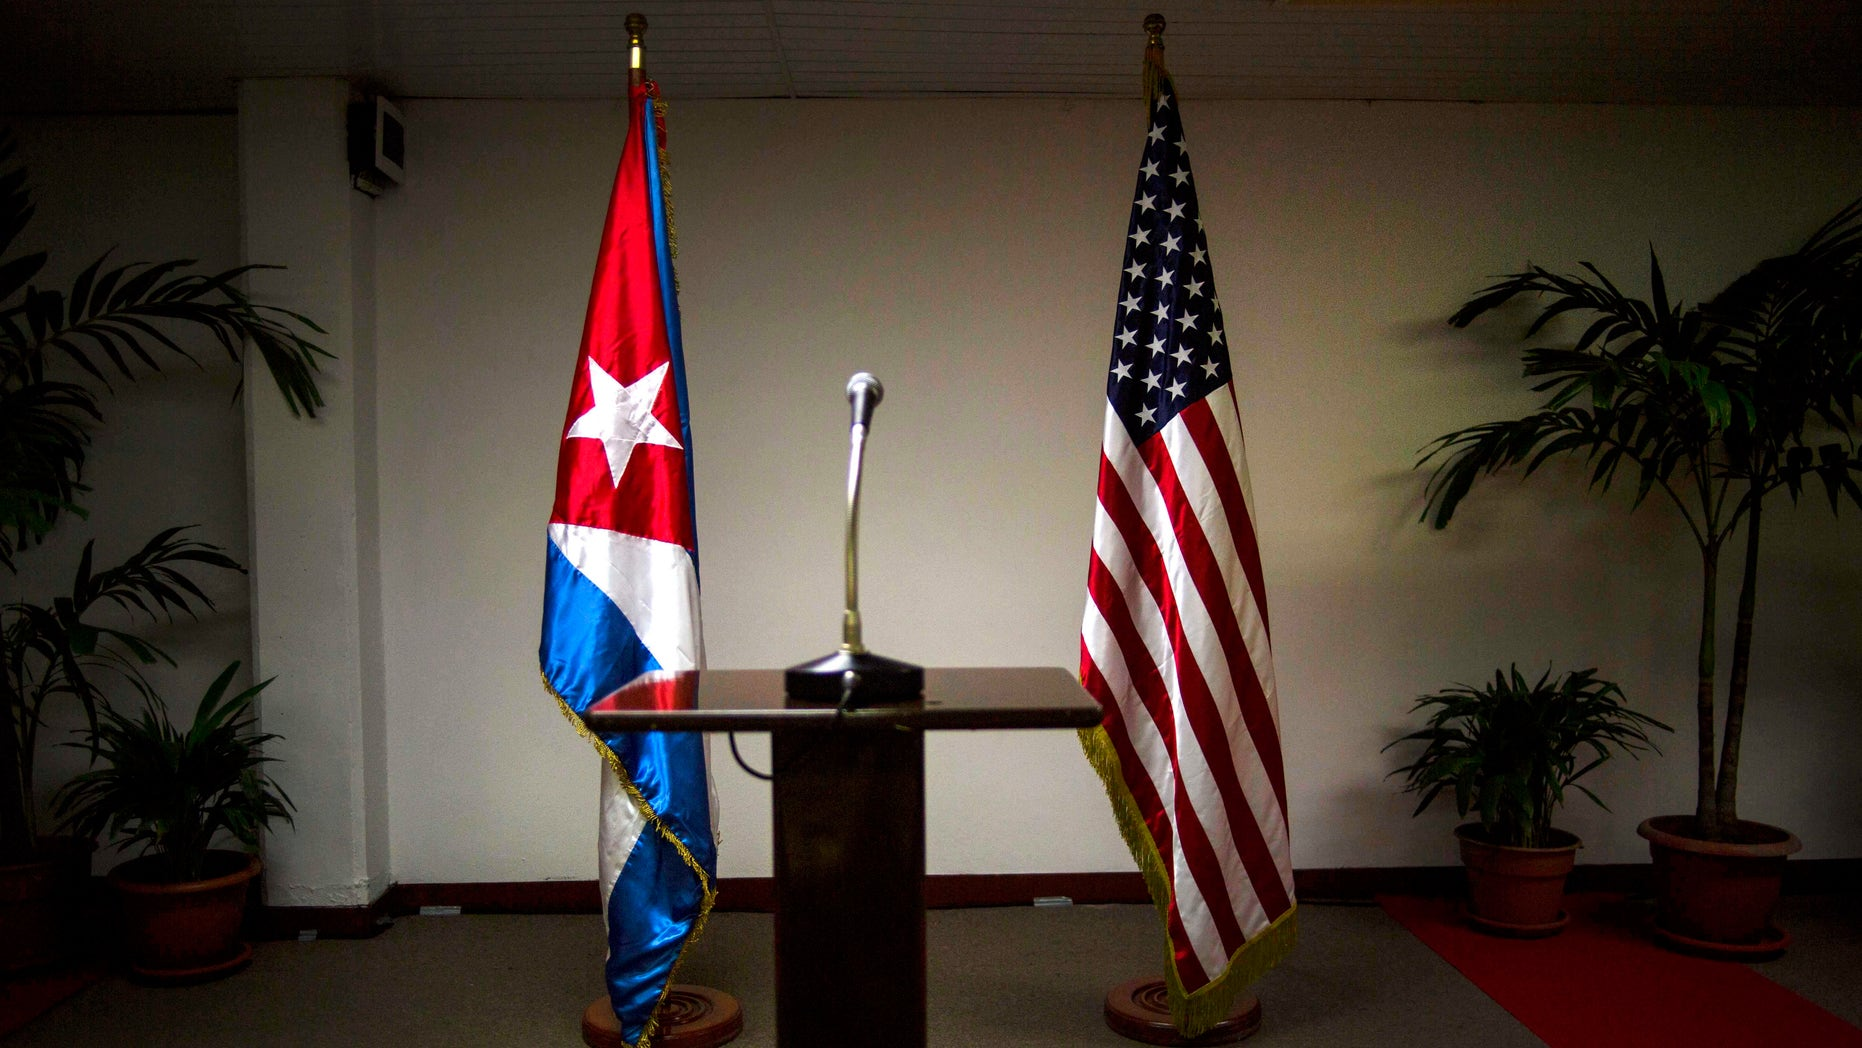 FILE - In this Jan. 22, 2015 file photo, a Cuban and U.S. flag stand before the start of a press conference on the sidelines of talks between the two nations in Havana, Cuba. The U.S. hopes to open an embassy in Havana before presidents Barack Obama and Raul Castro meet at a regional summit in April, which will be the scene of the presidents' first face-to-face meeting since they announced on Dec. 17 that they will re-establish diplomatic relations after a half-century of hostility. (AP Photo/Ramon Espinosa, File)